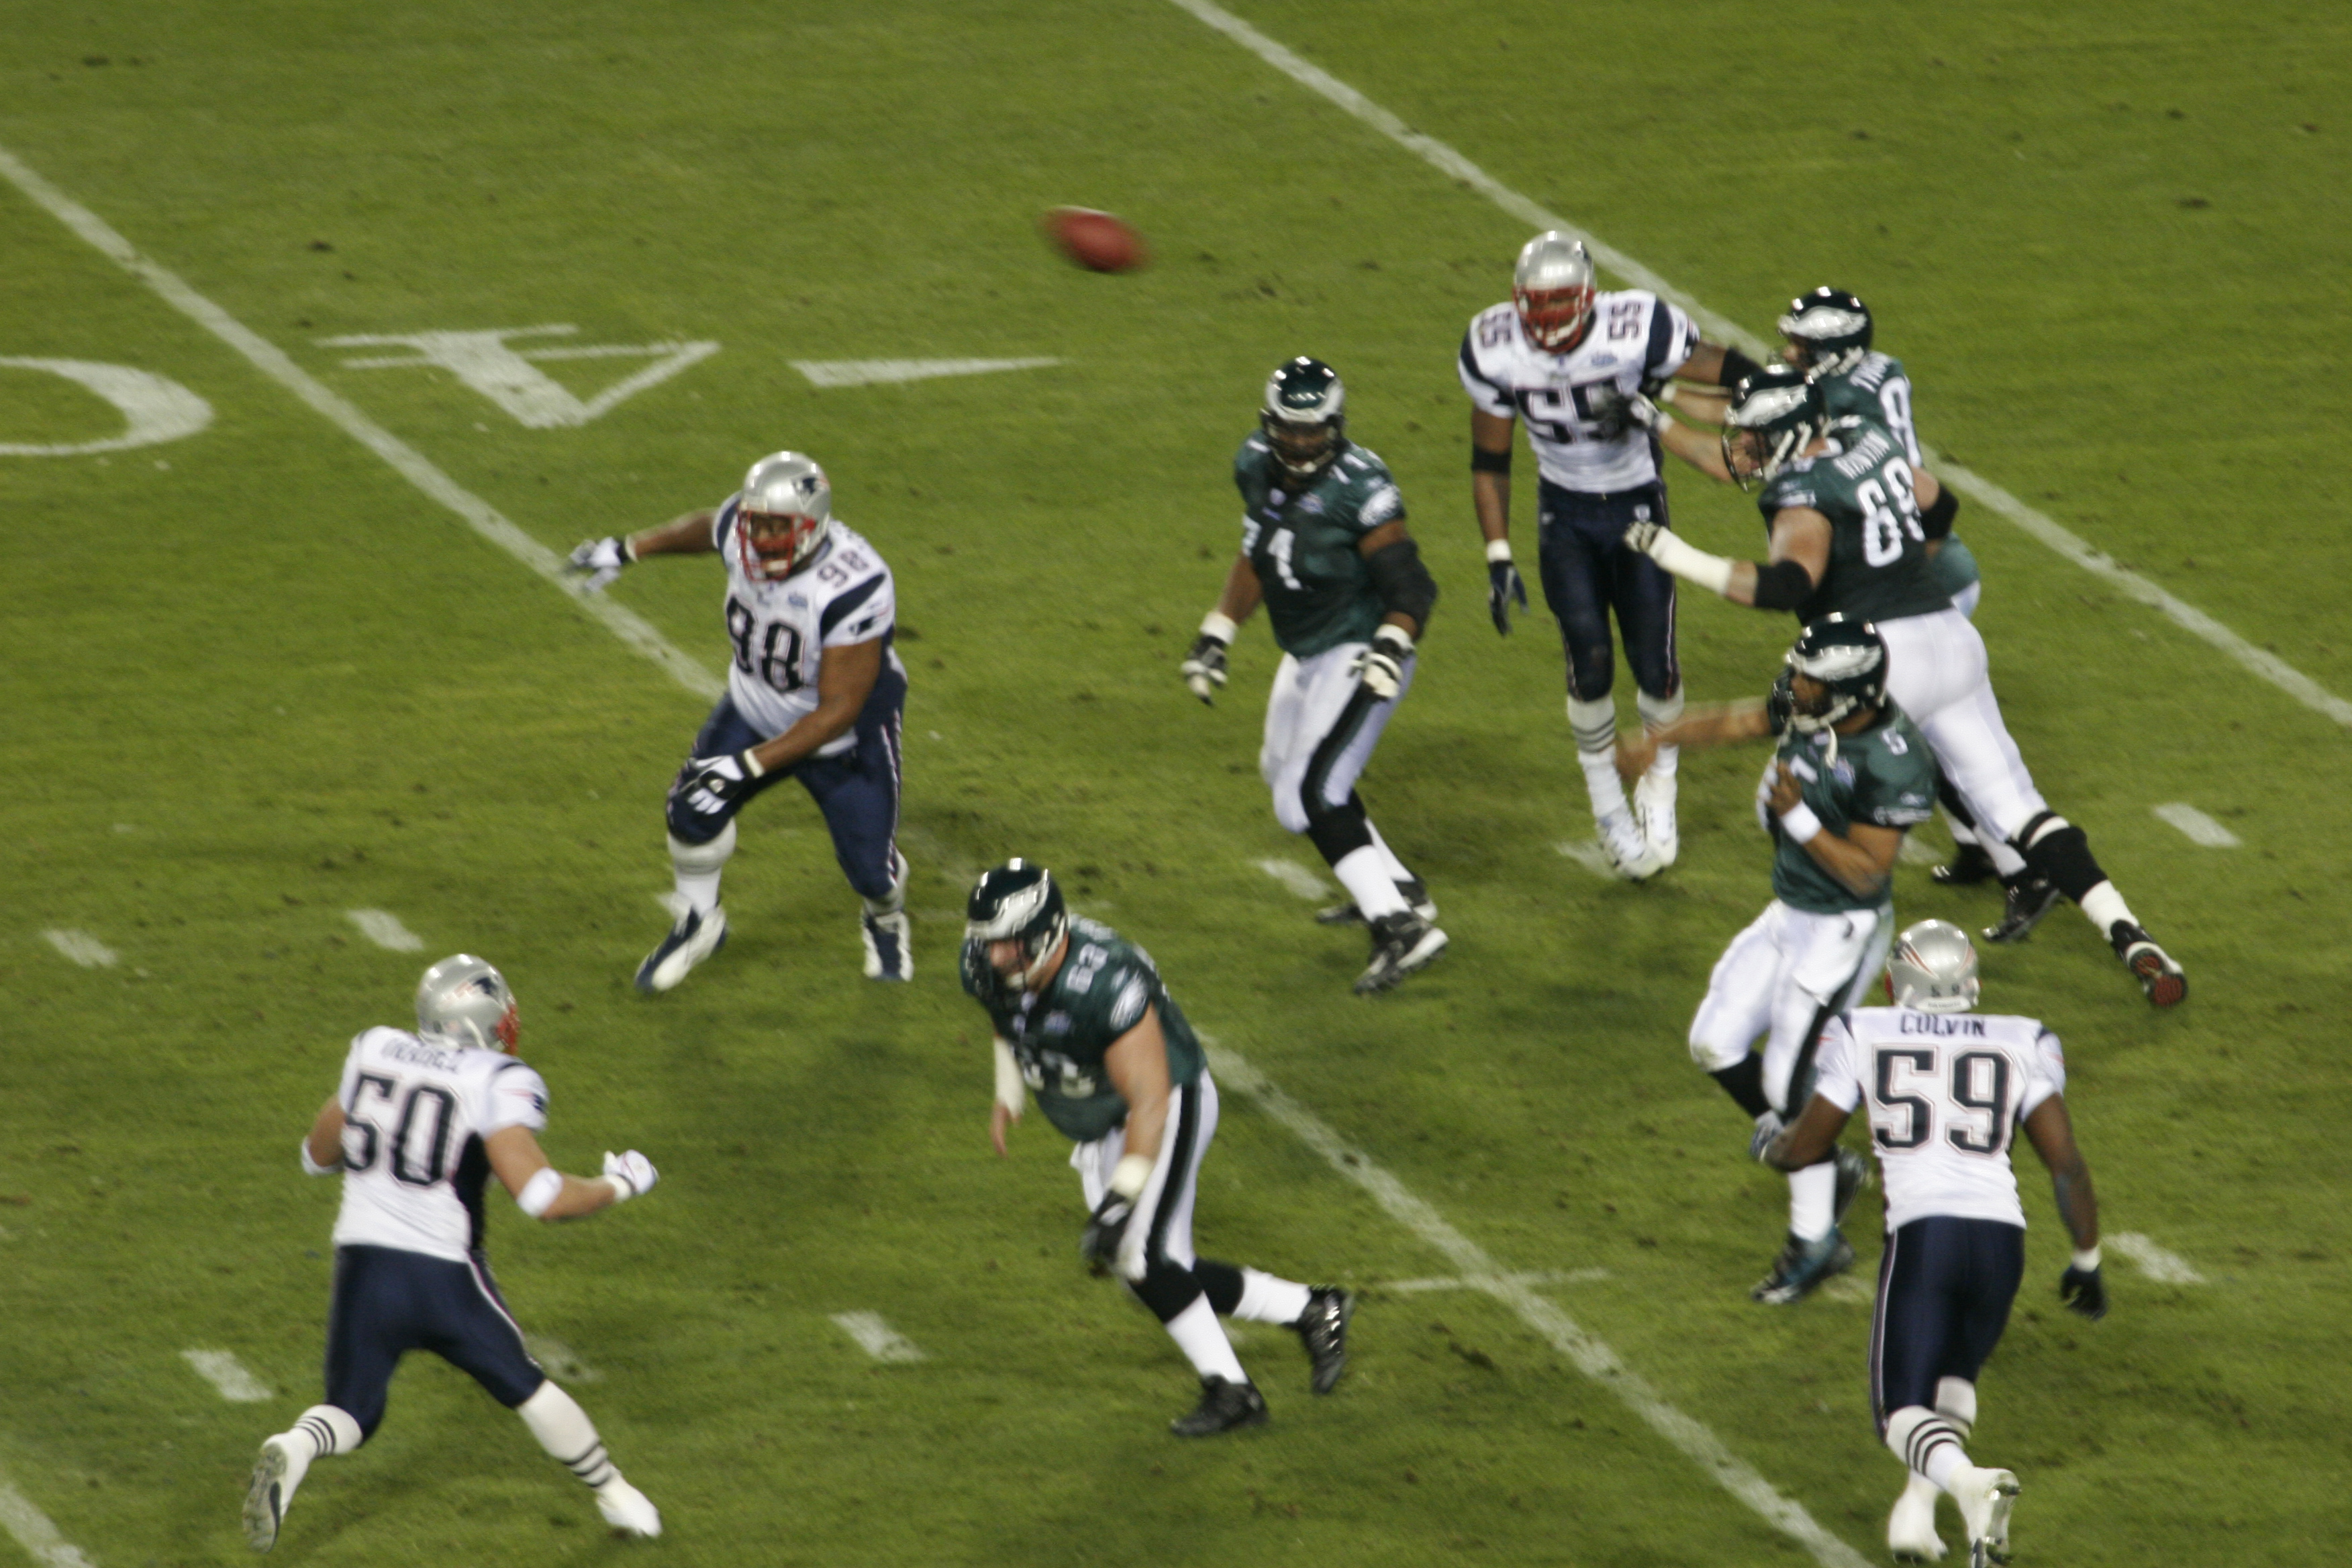 File:Eagles on offense at Super Bowl XXXIX 1.jpg